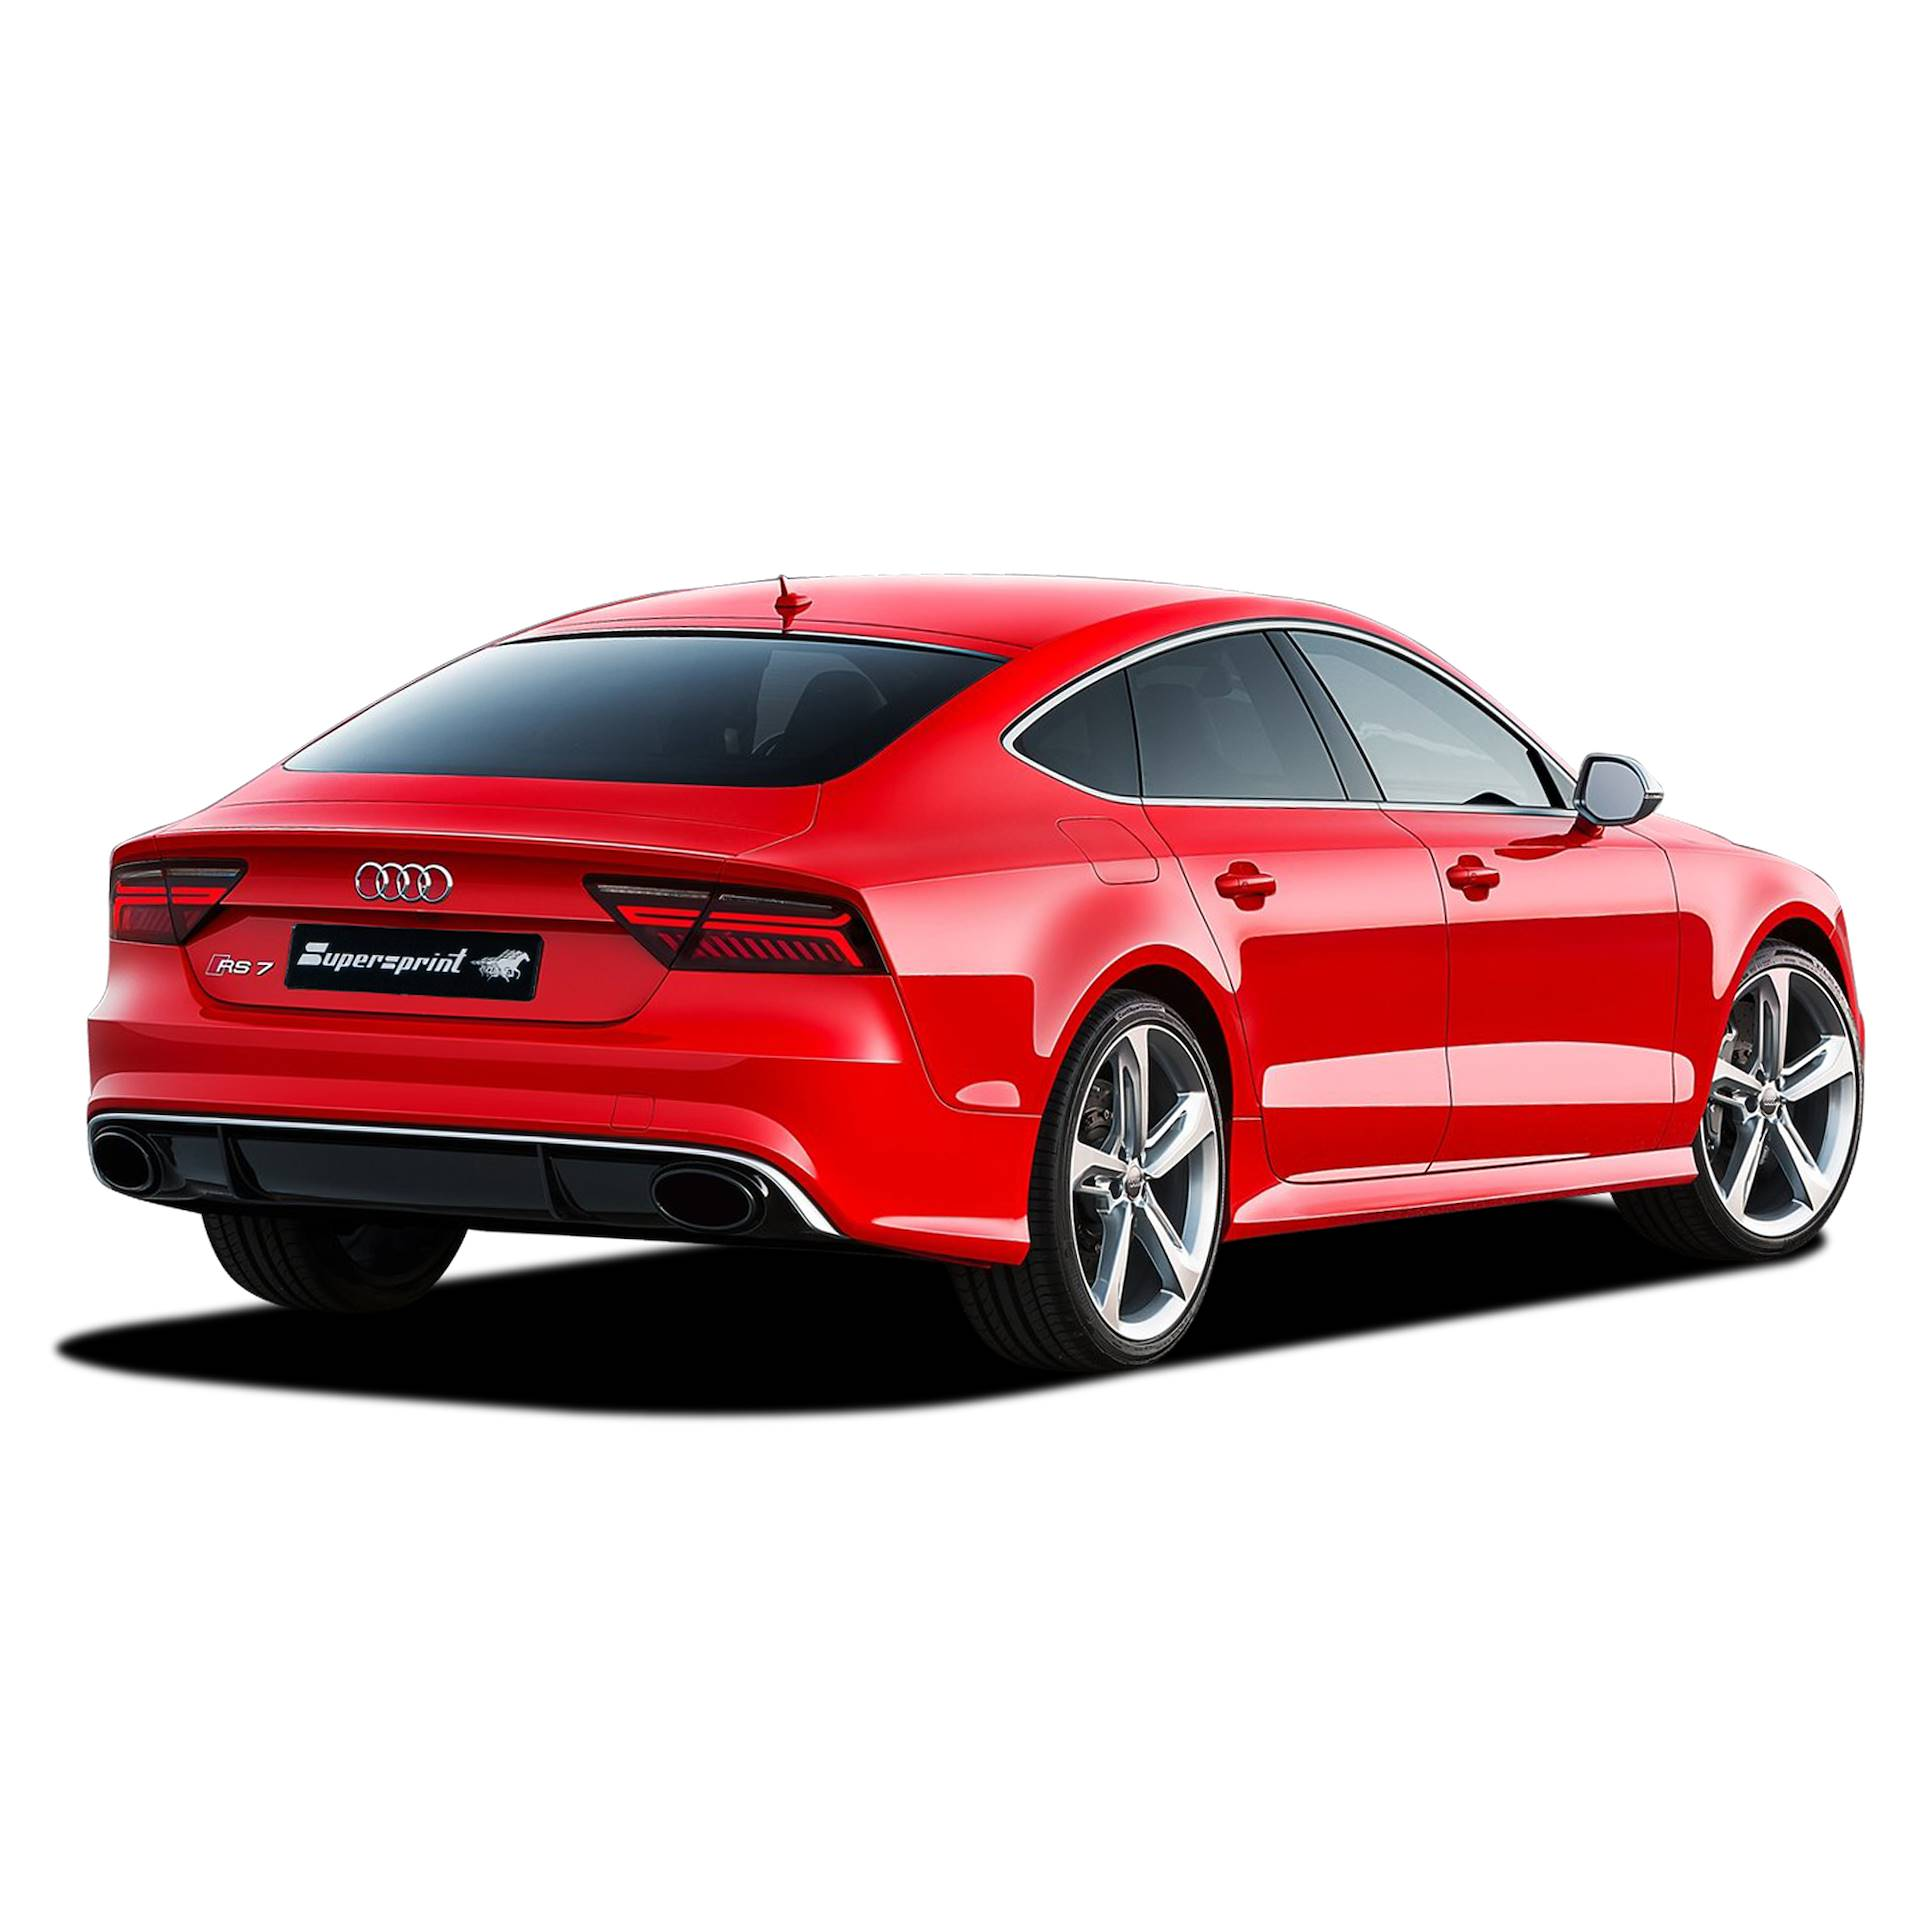 Performance Sport Exhaust For Audi RS7 Facelift With Valve